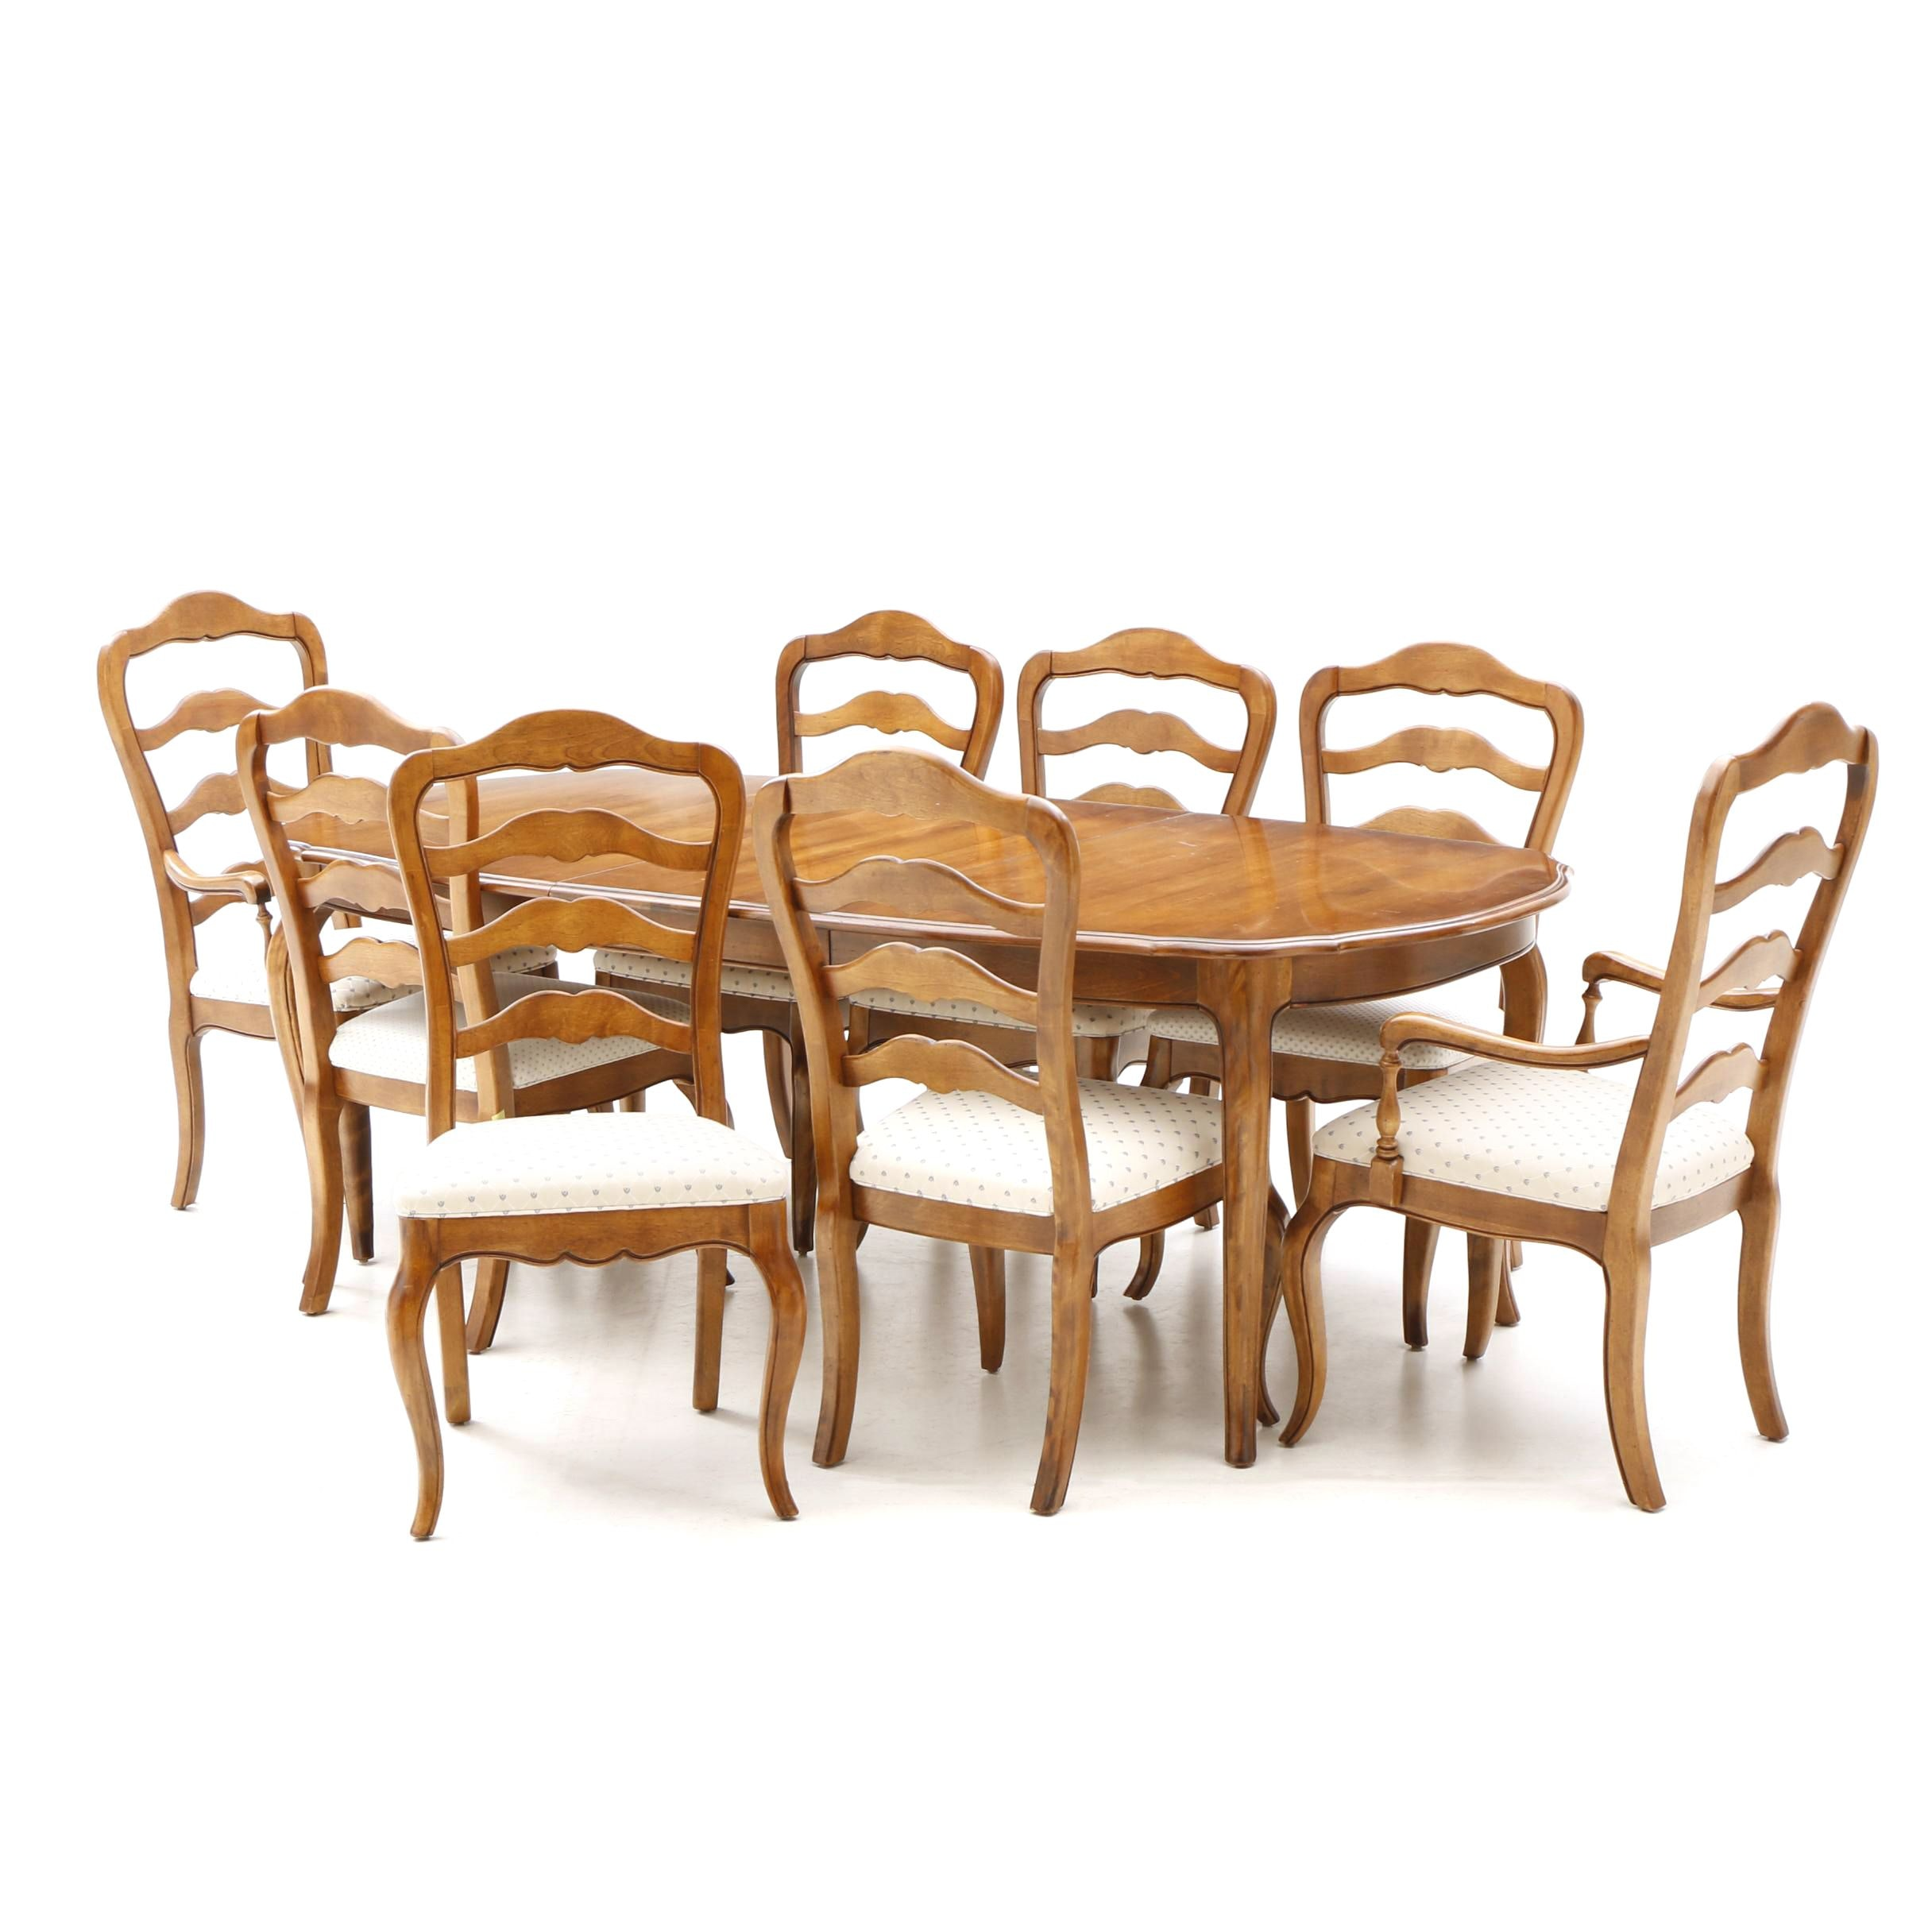 French Provincial Style Maple Finish Dining Set by Ethan Allen, 20th Century